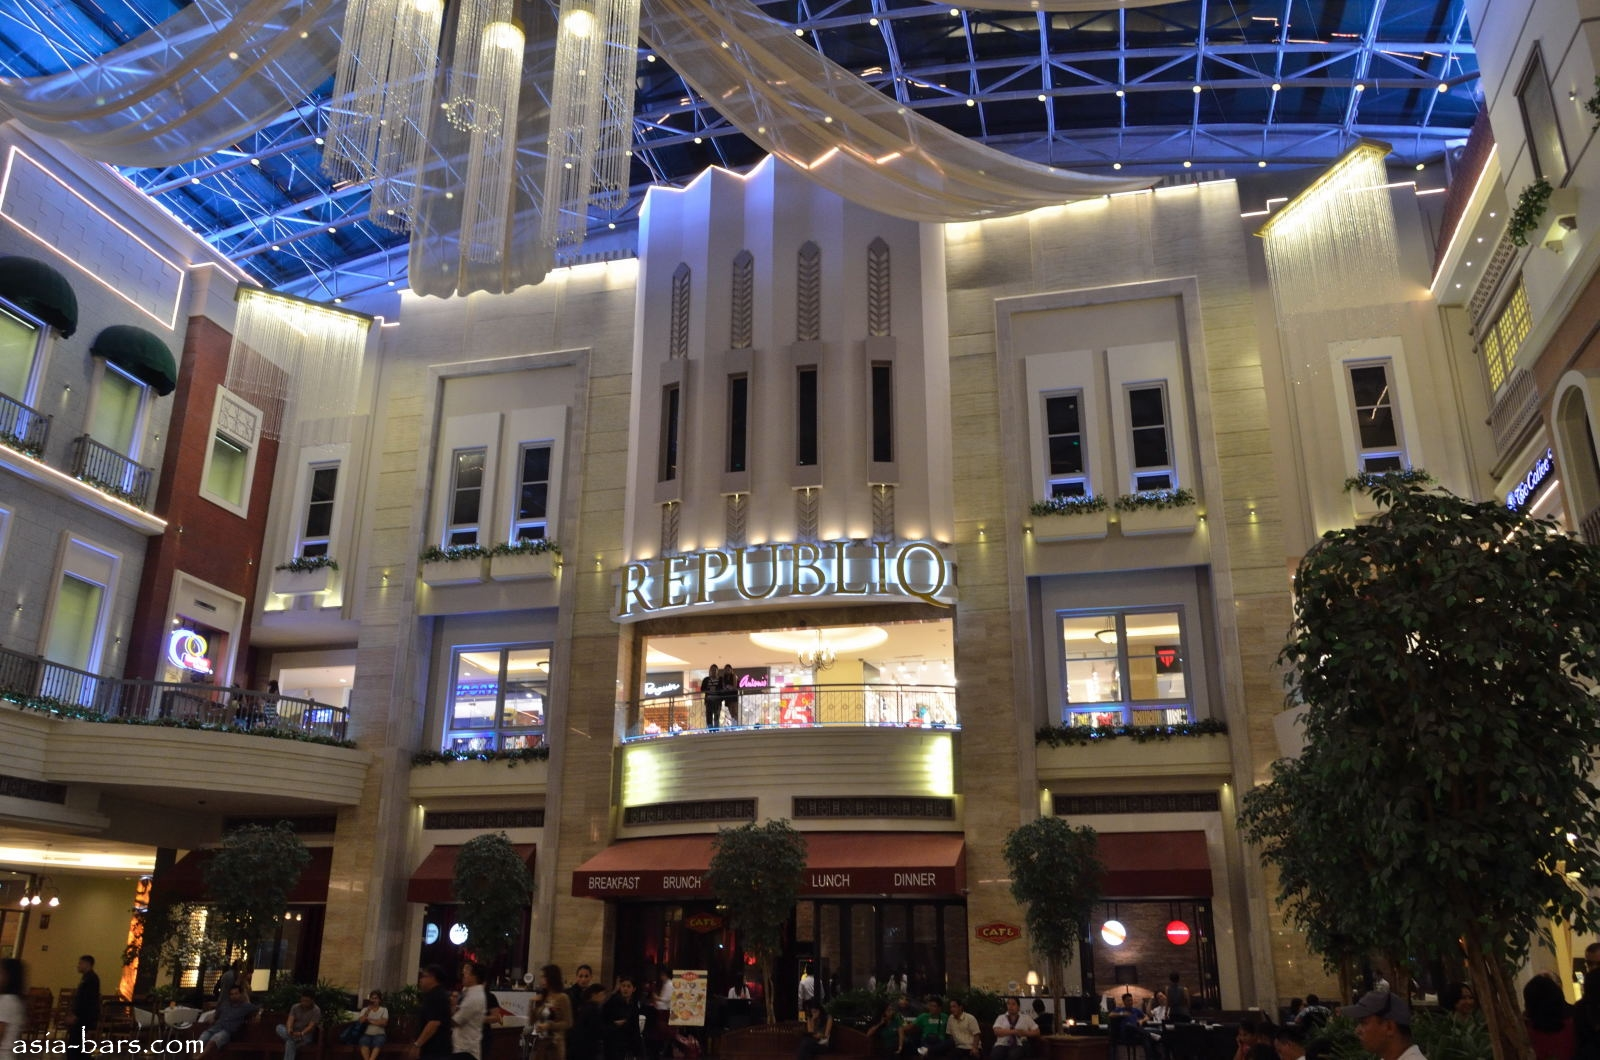 The exterior of republiq viewed from the atrium of the newport mall at